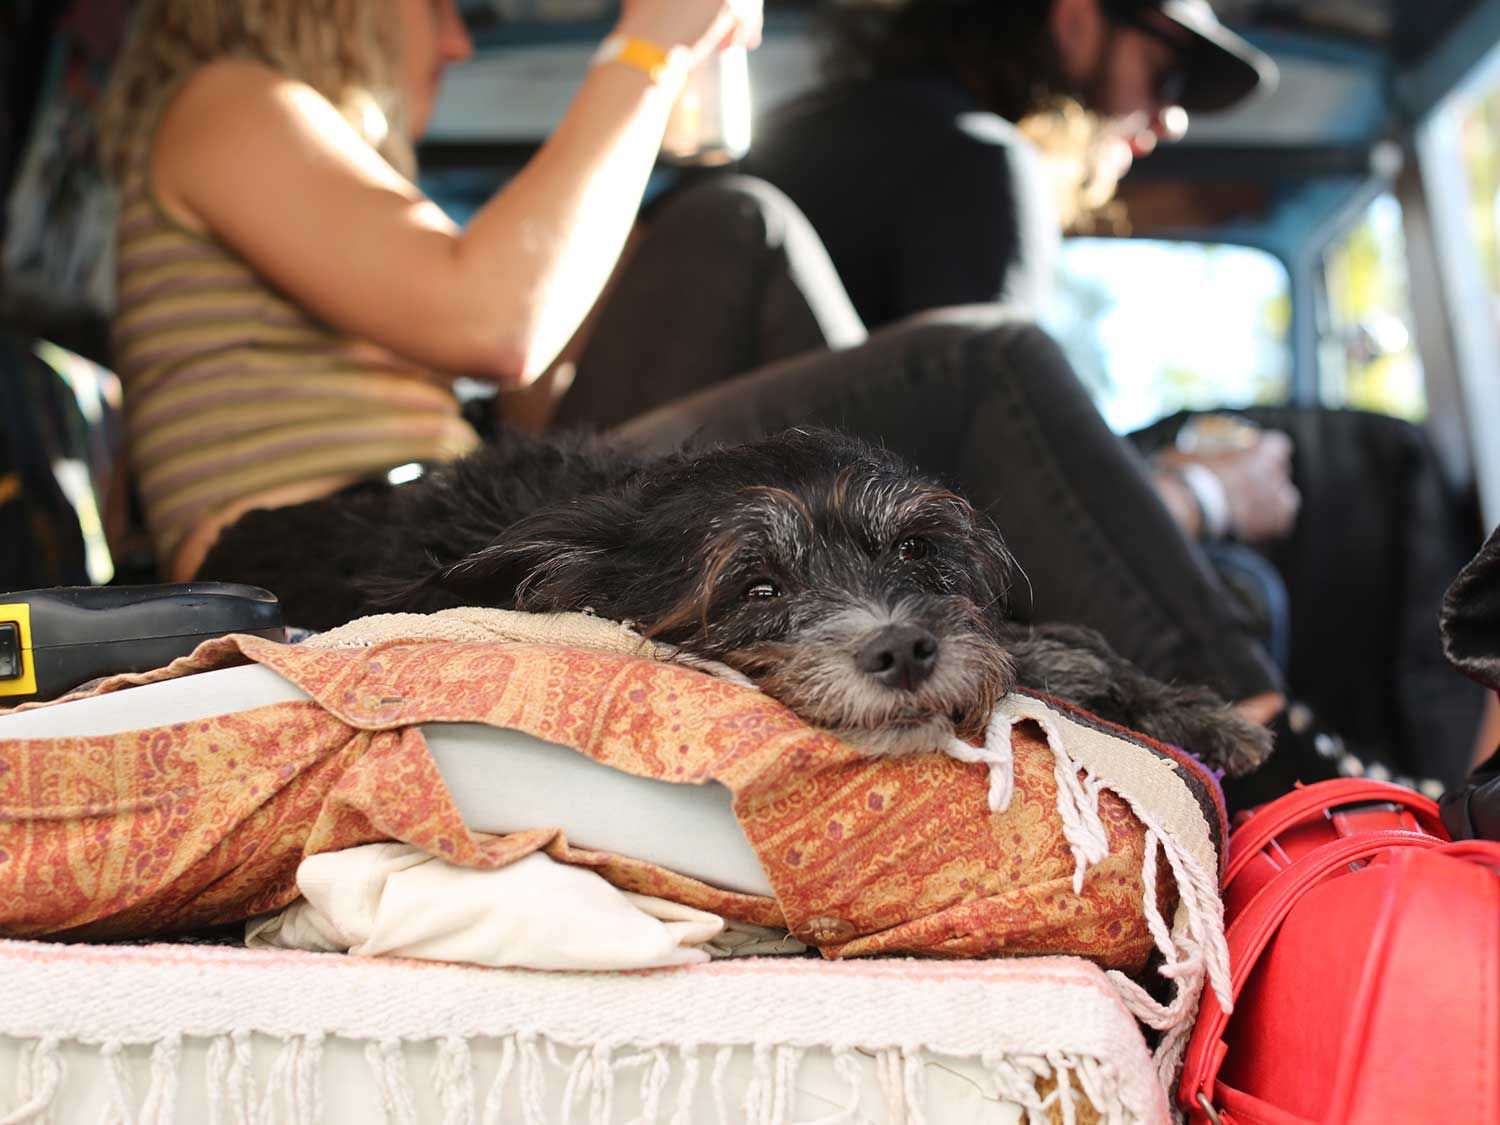 Best Boy in Show resting in one of the custom vans. Paradise Road Show is family and pet friendly!